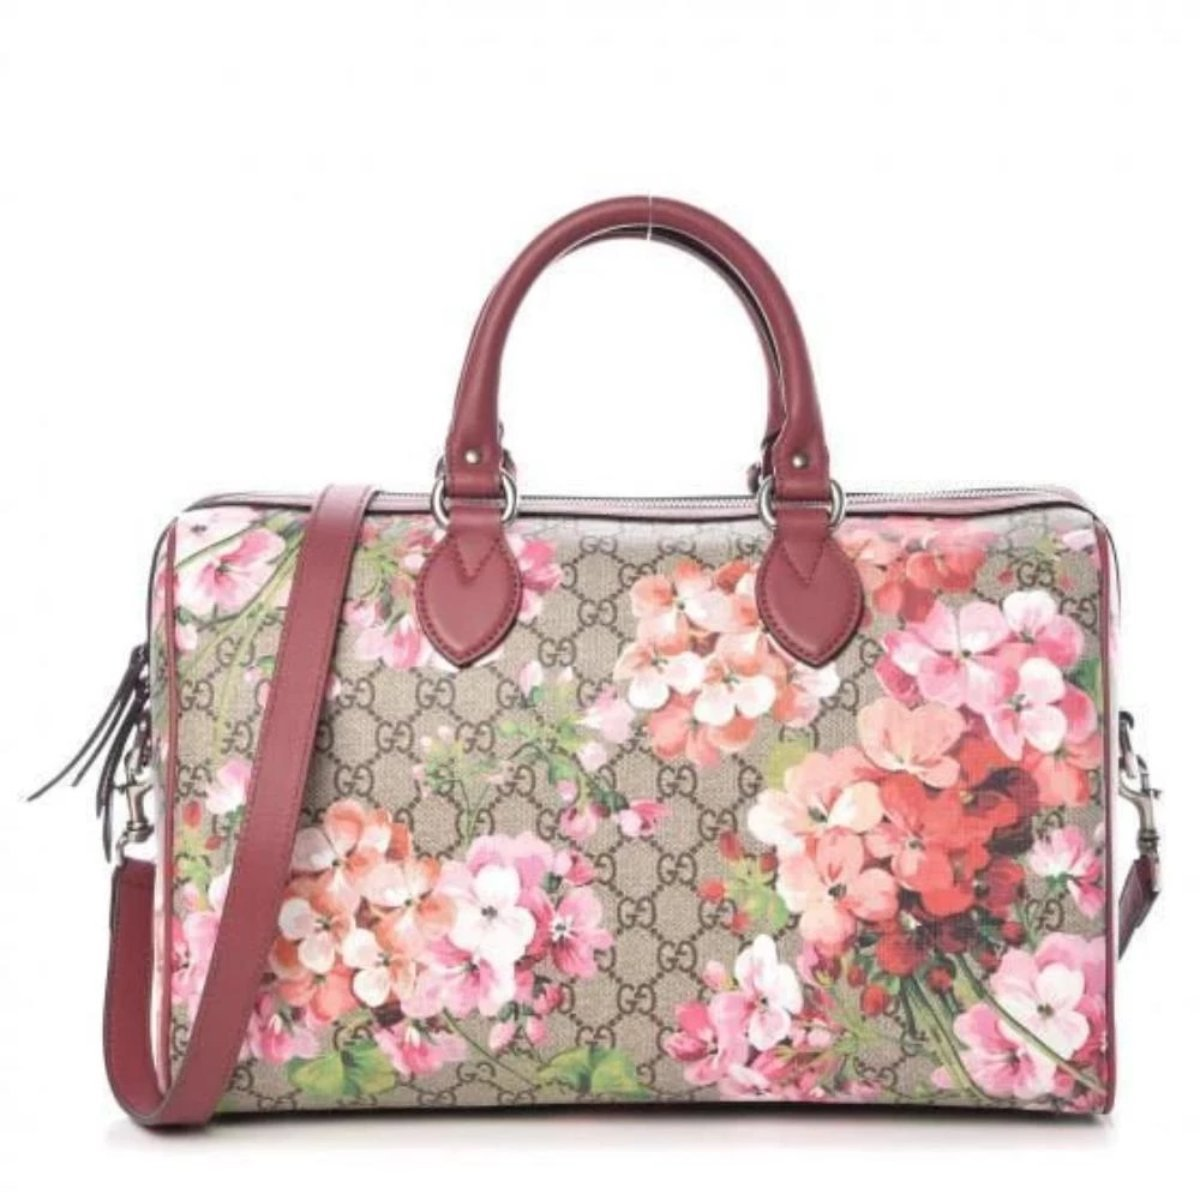 GUCCI GG Supreme Monogram Blooms Large Top Handle Boston Bag Rose 409527